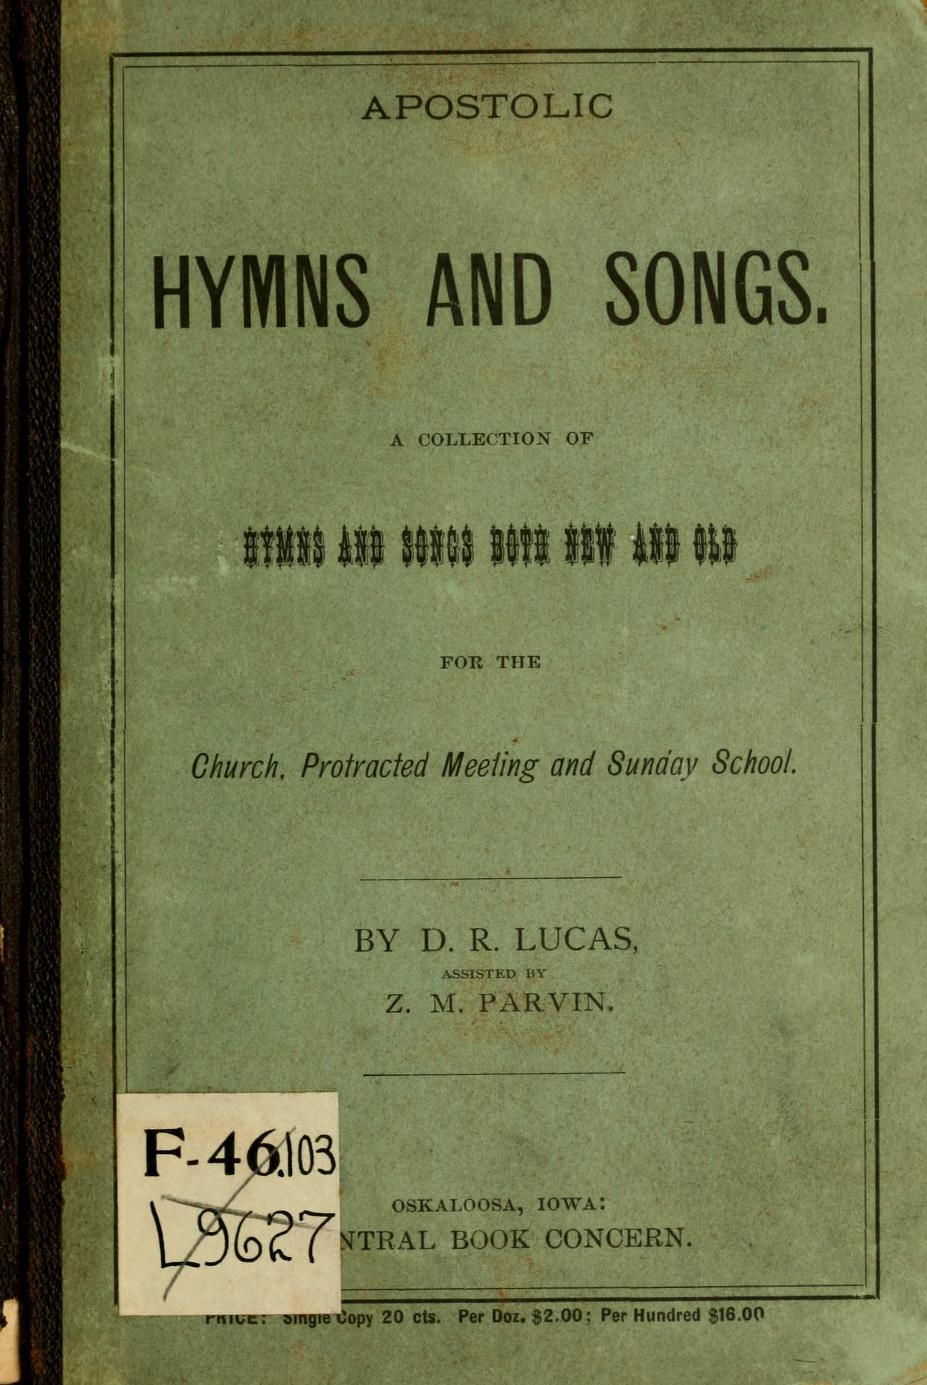 Apostolic Hymns and Songs: a collection of hymns and songs